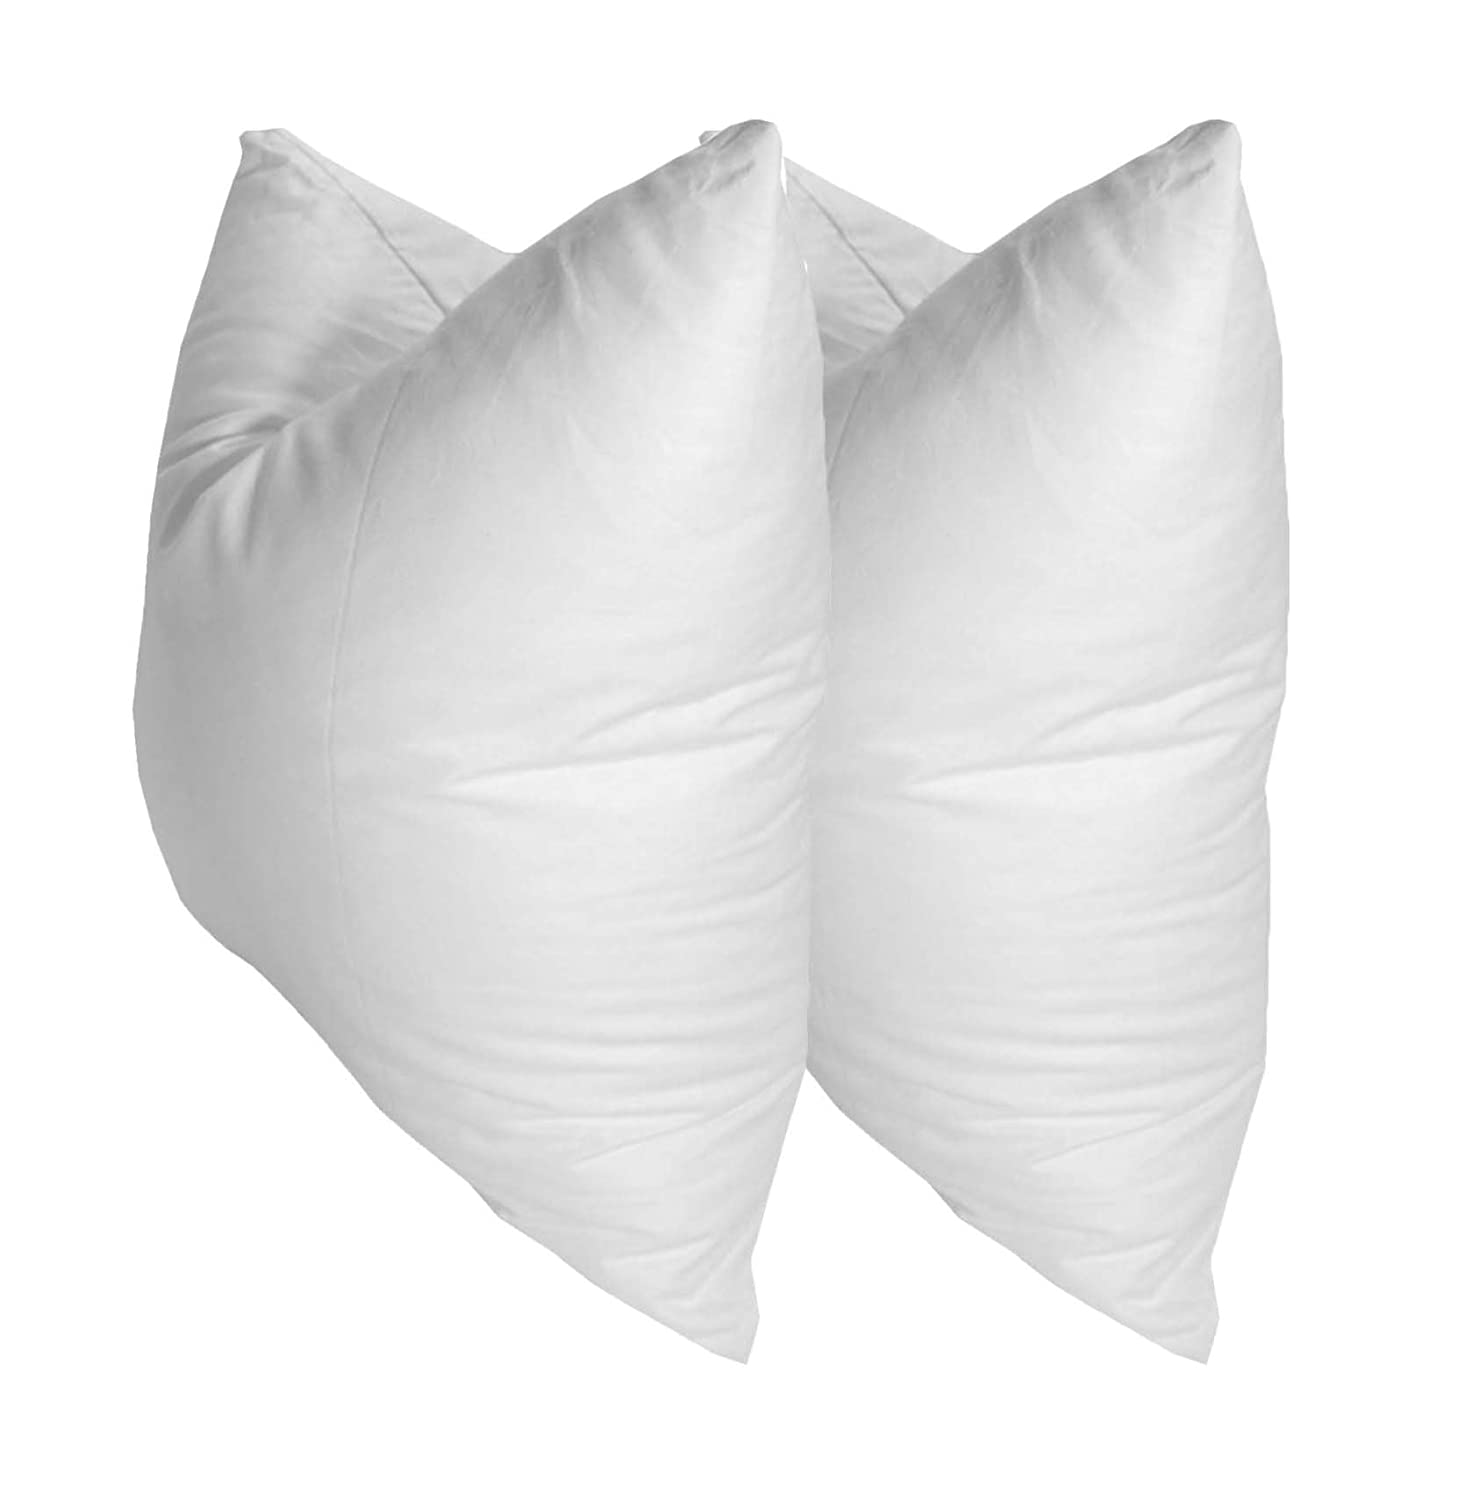 Pillowflex Set of 2 Synthetic Down Alternative Pillow Inserts for Shams 12 Inch by 16 Inch